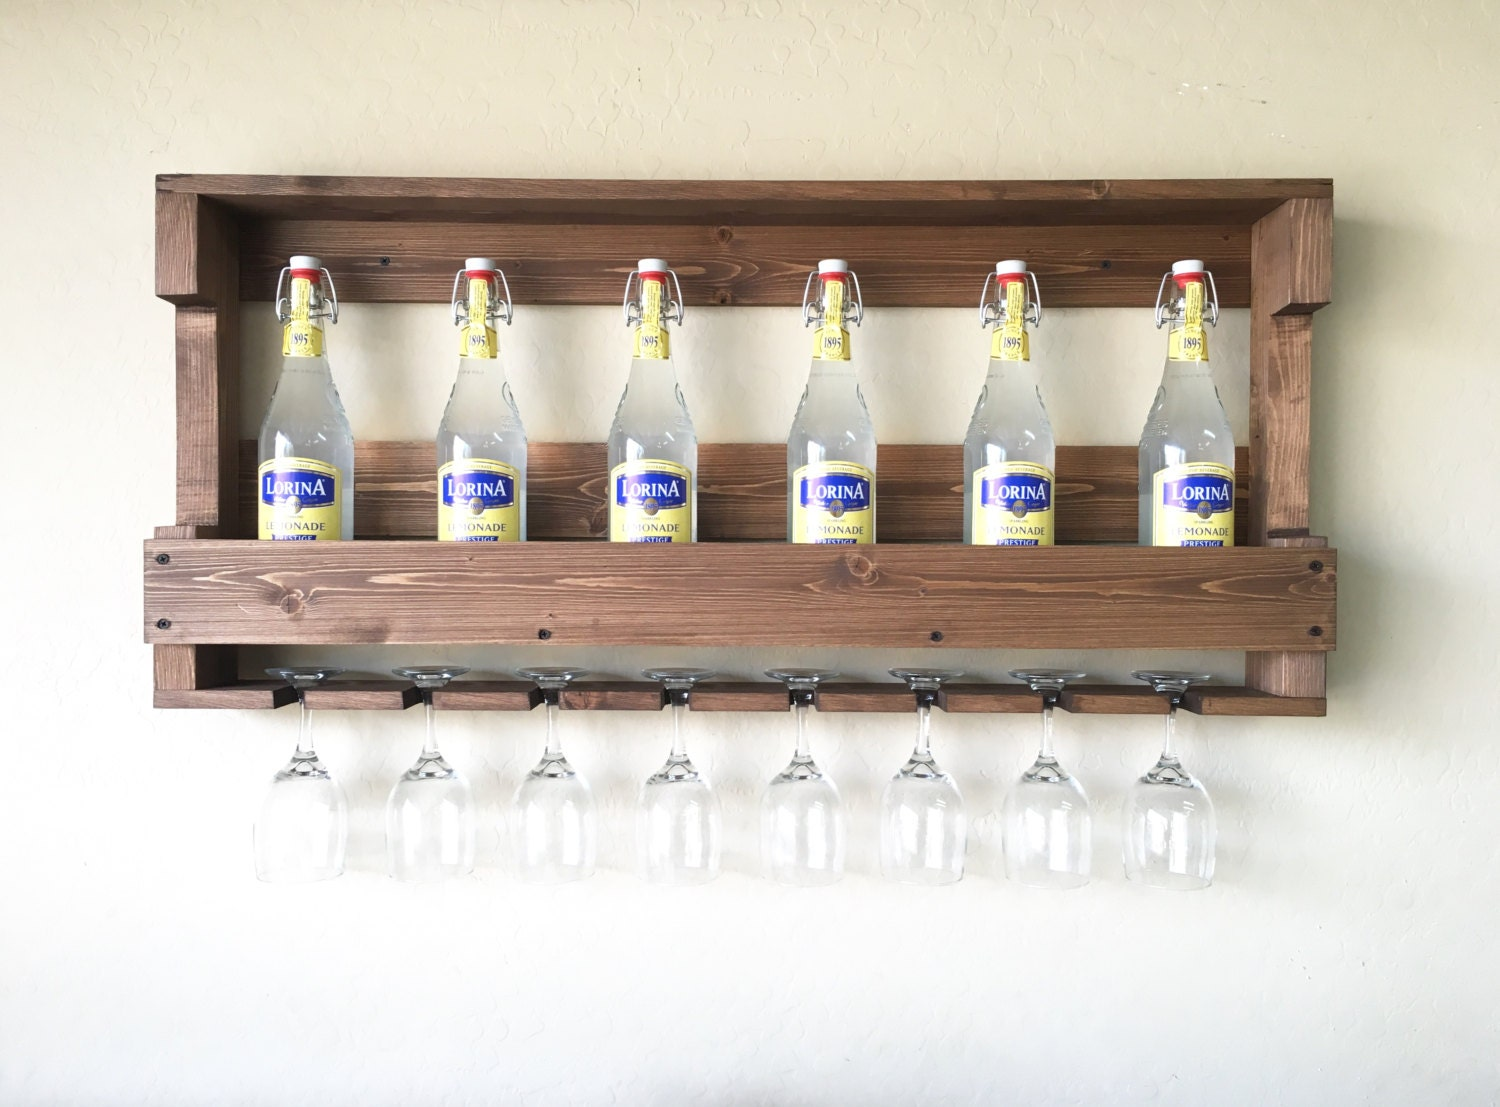 Wine Racks For Home: Rustic Wooden Wine Rack Wine Rack Farmhouse Decor Wooden